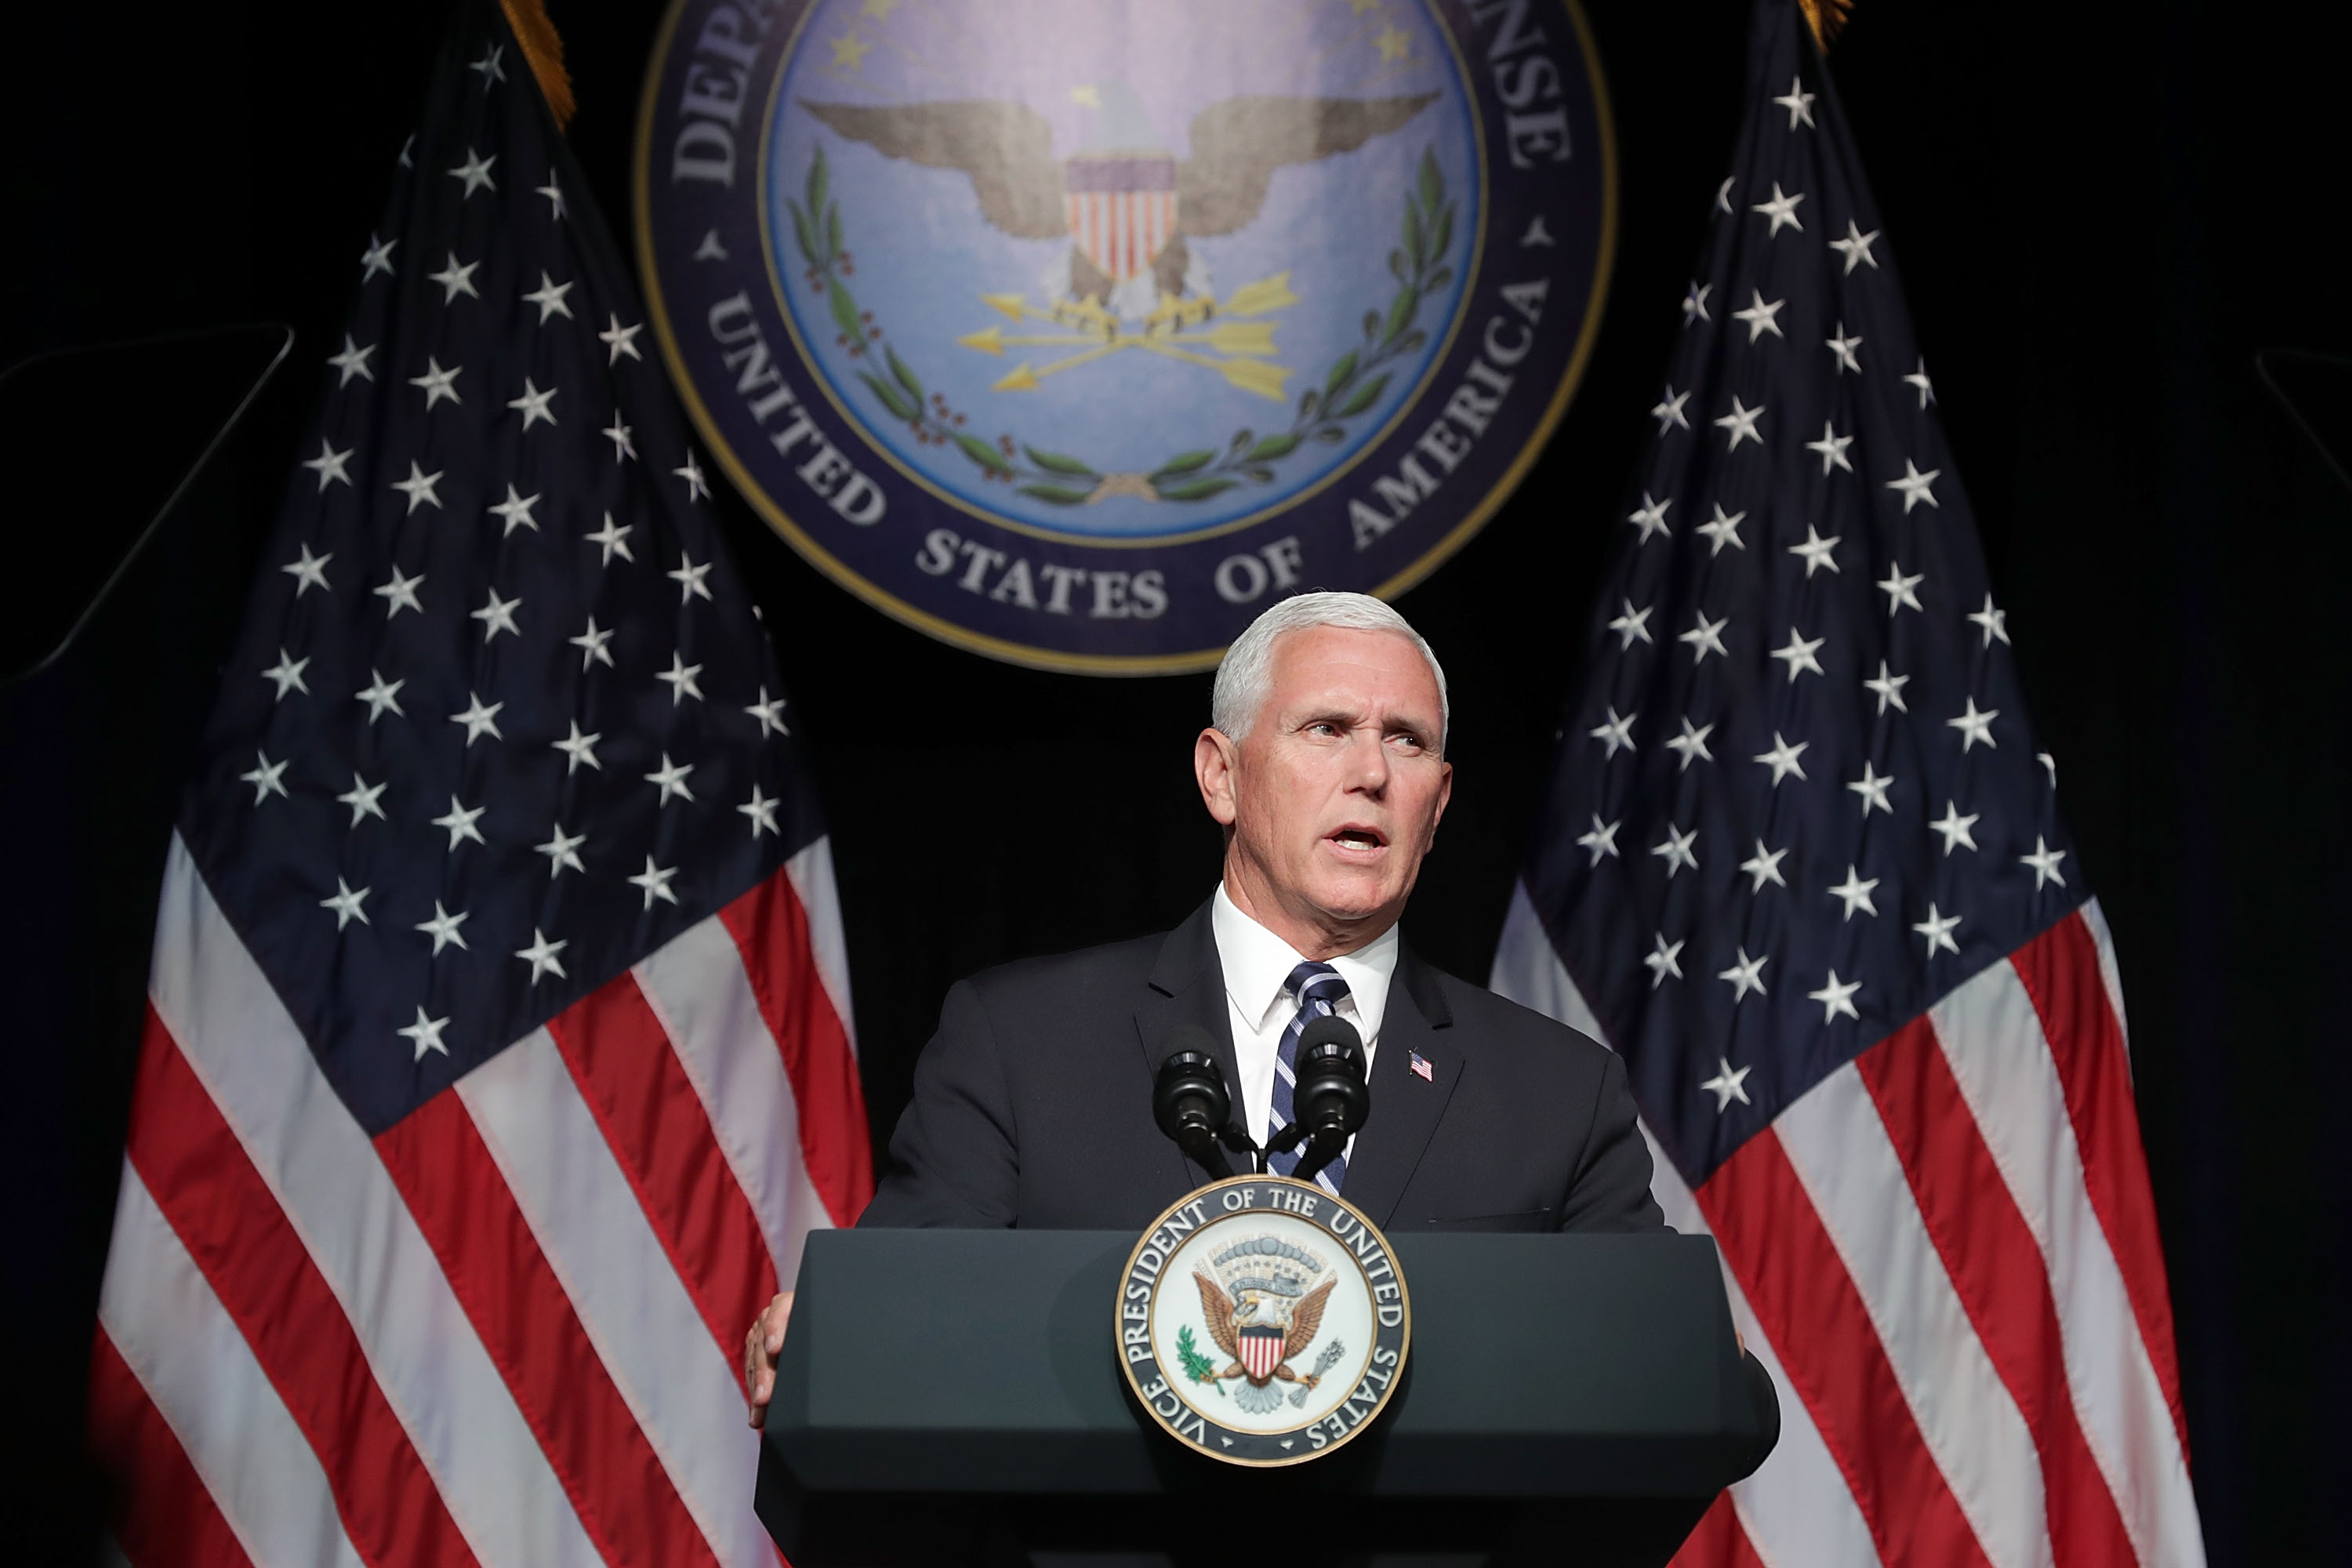 U.S. Vice President Mike Pence announces the Trump Administration's plan to create the U.S. Space Force by 2020 during a speech at the Pentagon August 9, 2018 in Arlington, Virginia.